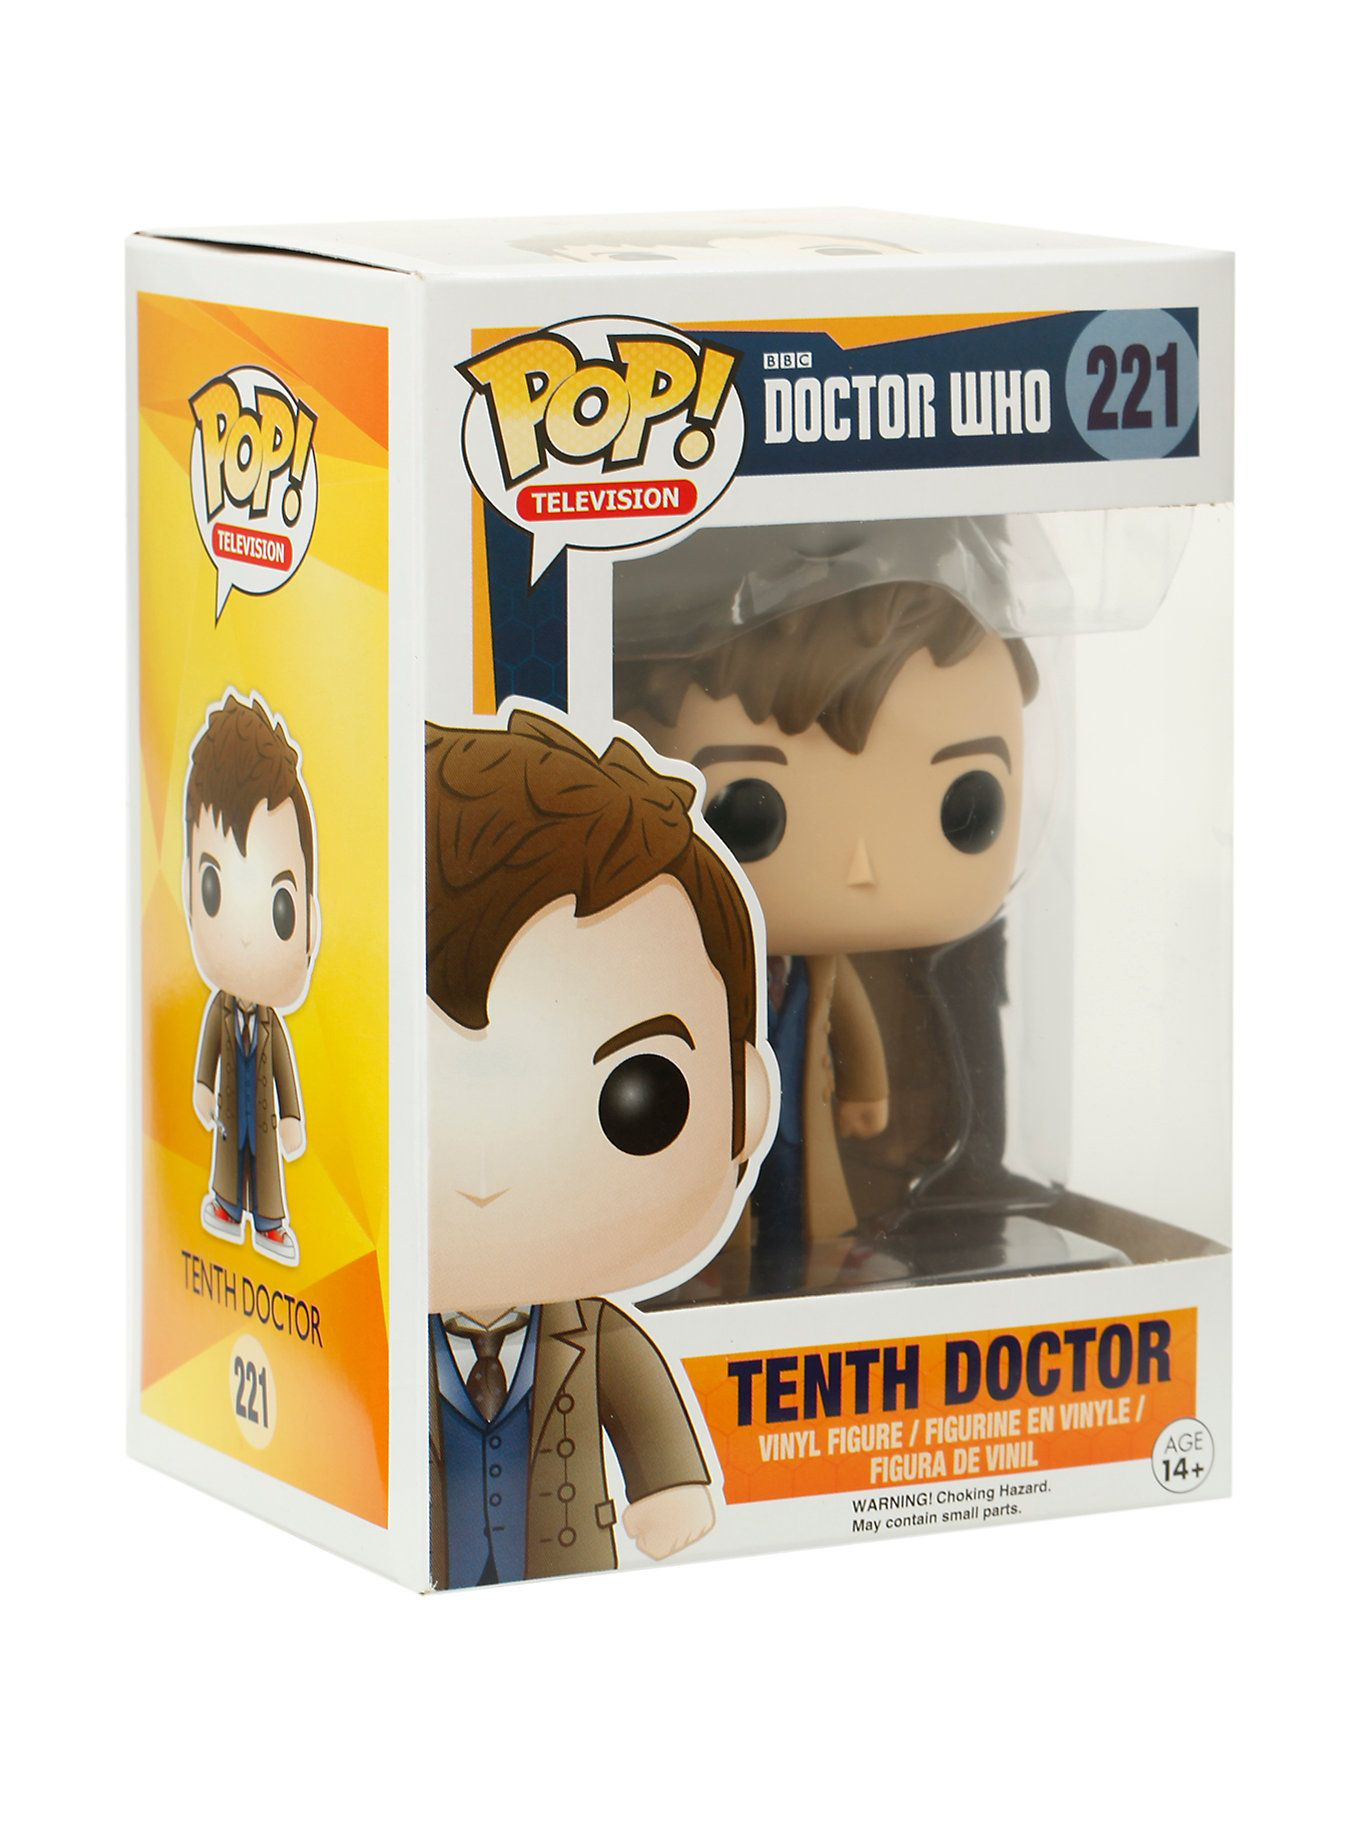 Funko Doctor Who Pop Television Tenth Doctor Vinyl Figure Vinyl Figures Doctor Who Tenth Doctor